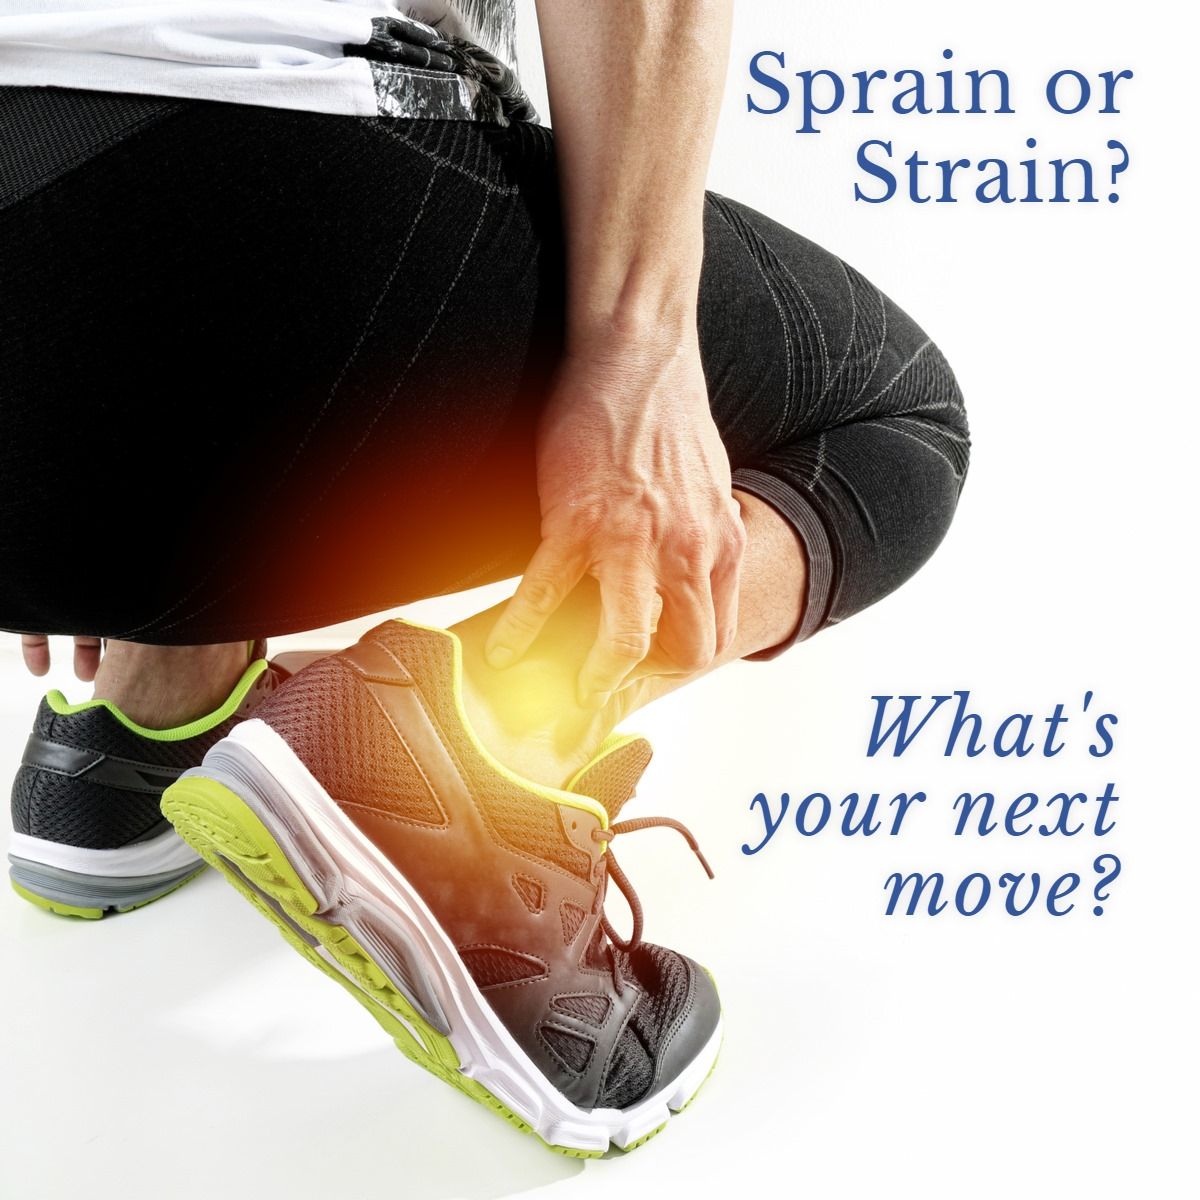 Sprain or Strain? What's your next move?